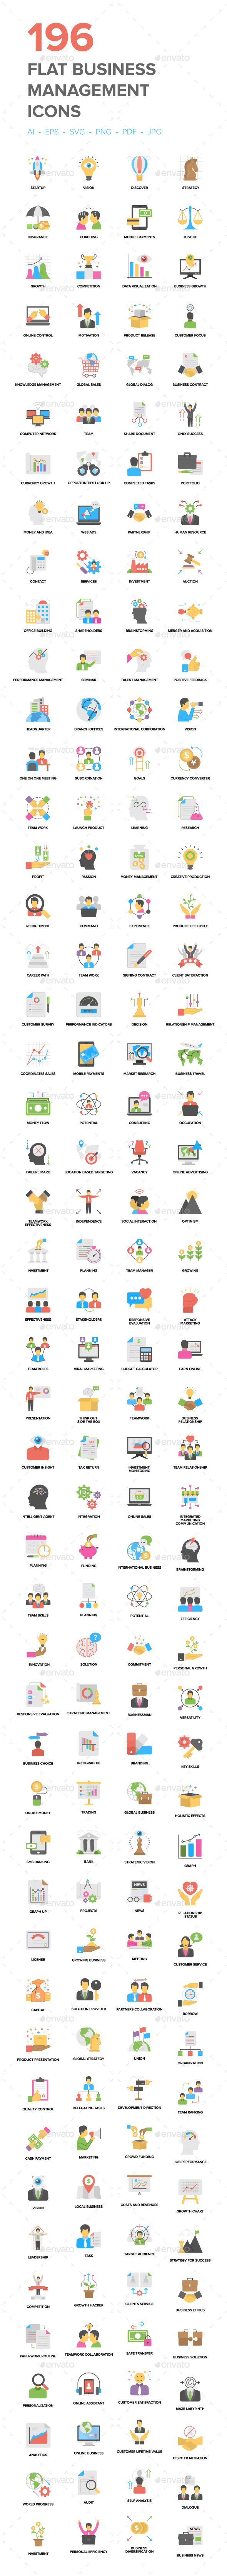 Flat Business Management Icons - Icons